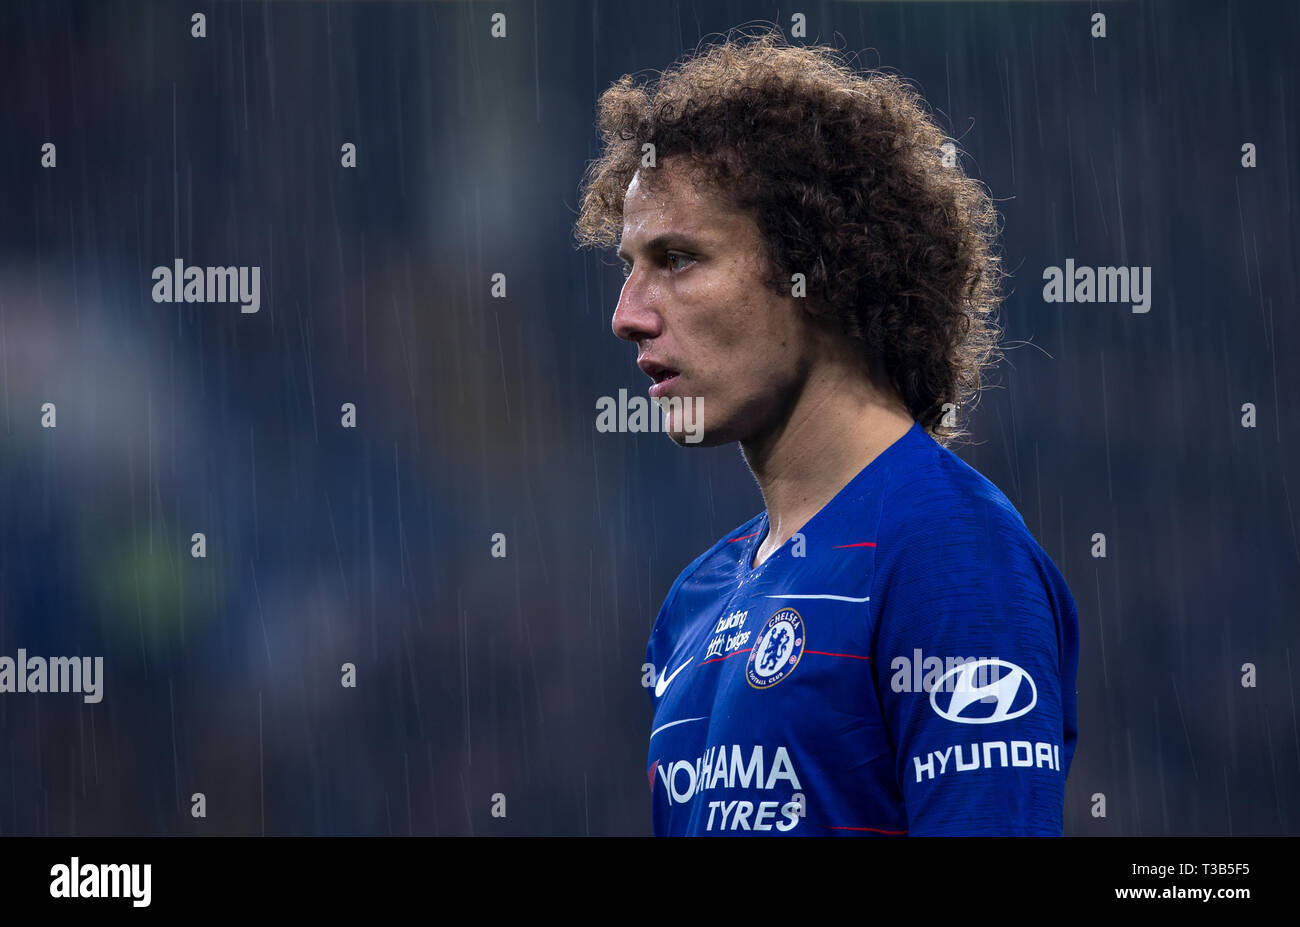 London, UK. 08th Apr, 2019. David LUIZ of Chelsea in the rain during the Premier League match between Chelsea and West Ham United at Stamford Bridge, London, England on 8 April 2019. Photo by Andy Rowland. Credit: PRiME Media Images/Alamy Live News Stock Photo